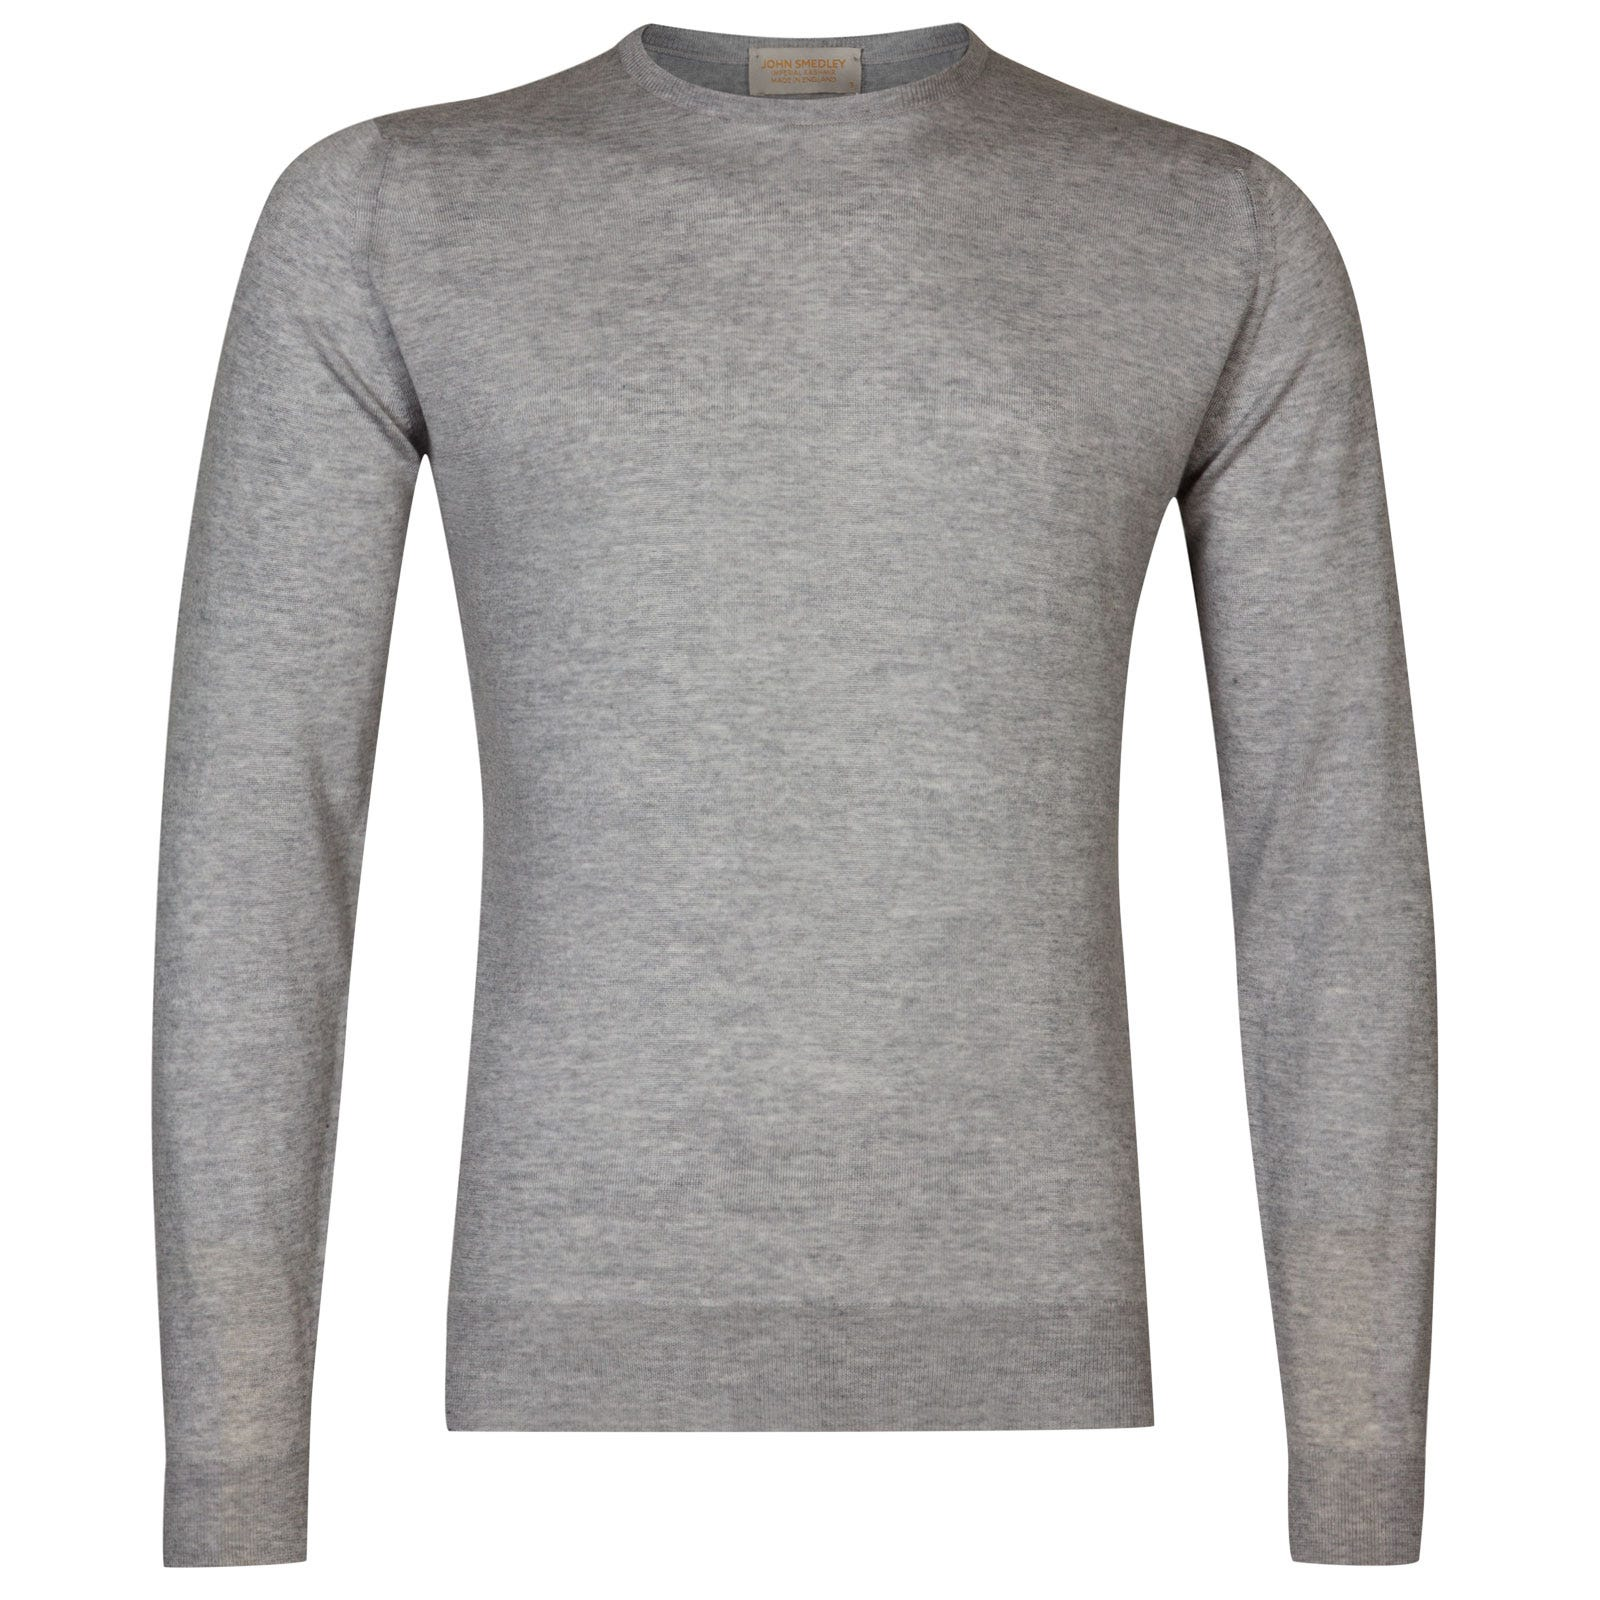 John Smedley sherman Merino Wool and Cashmere Pullover in Soft Grey-XL